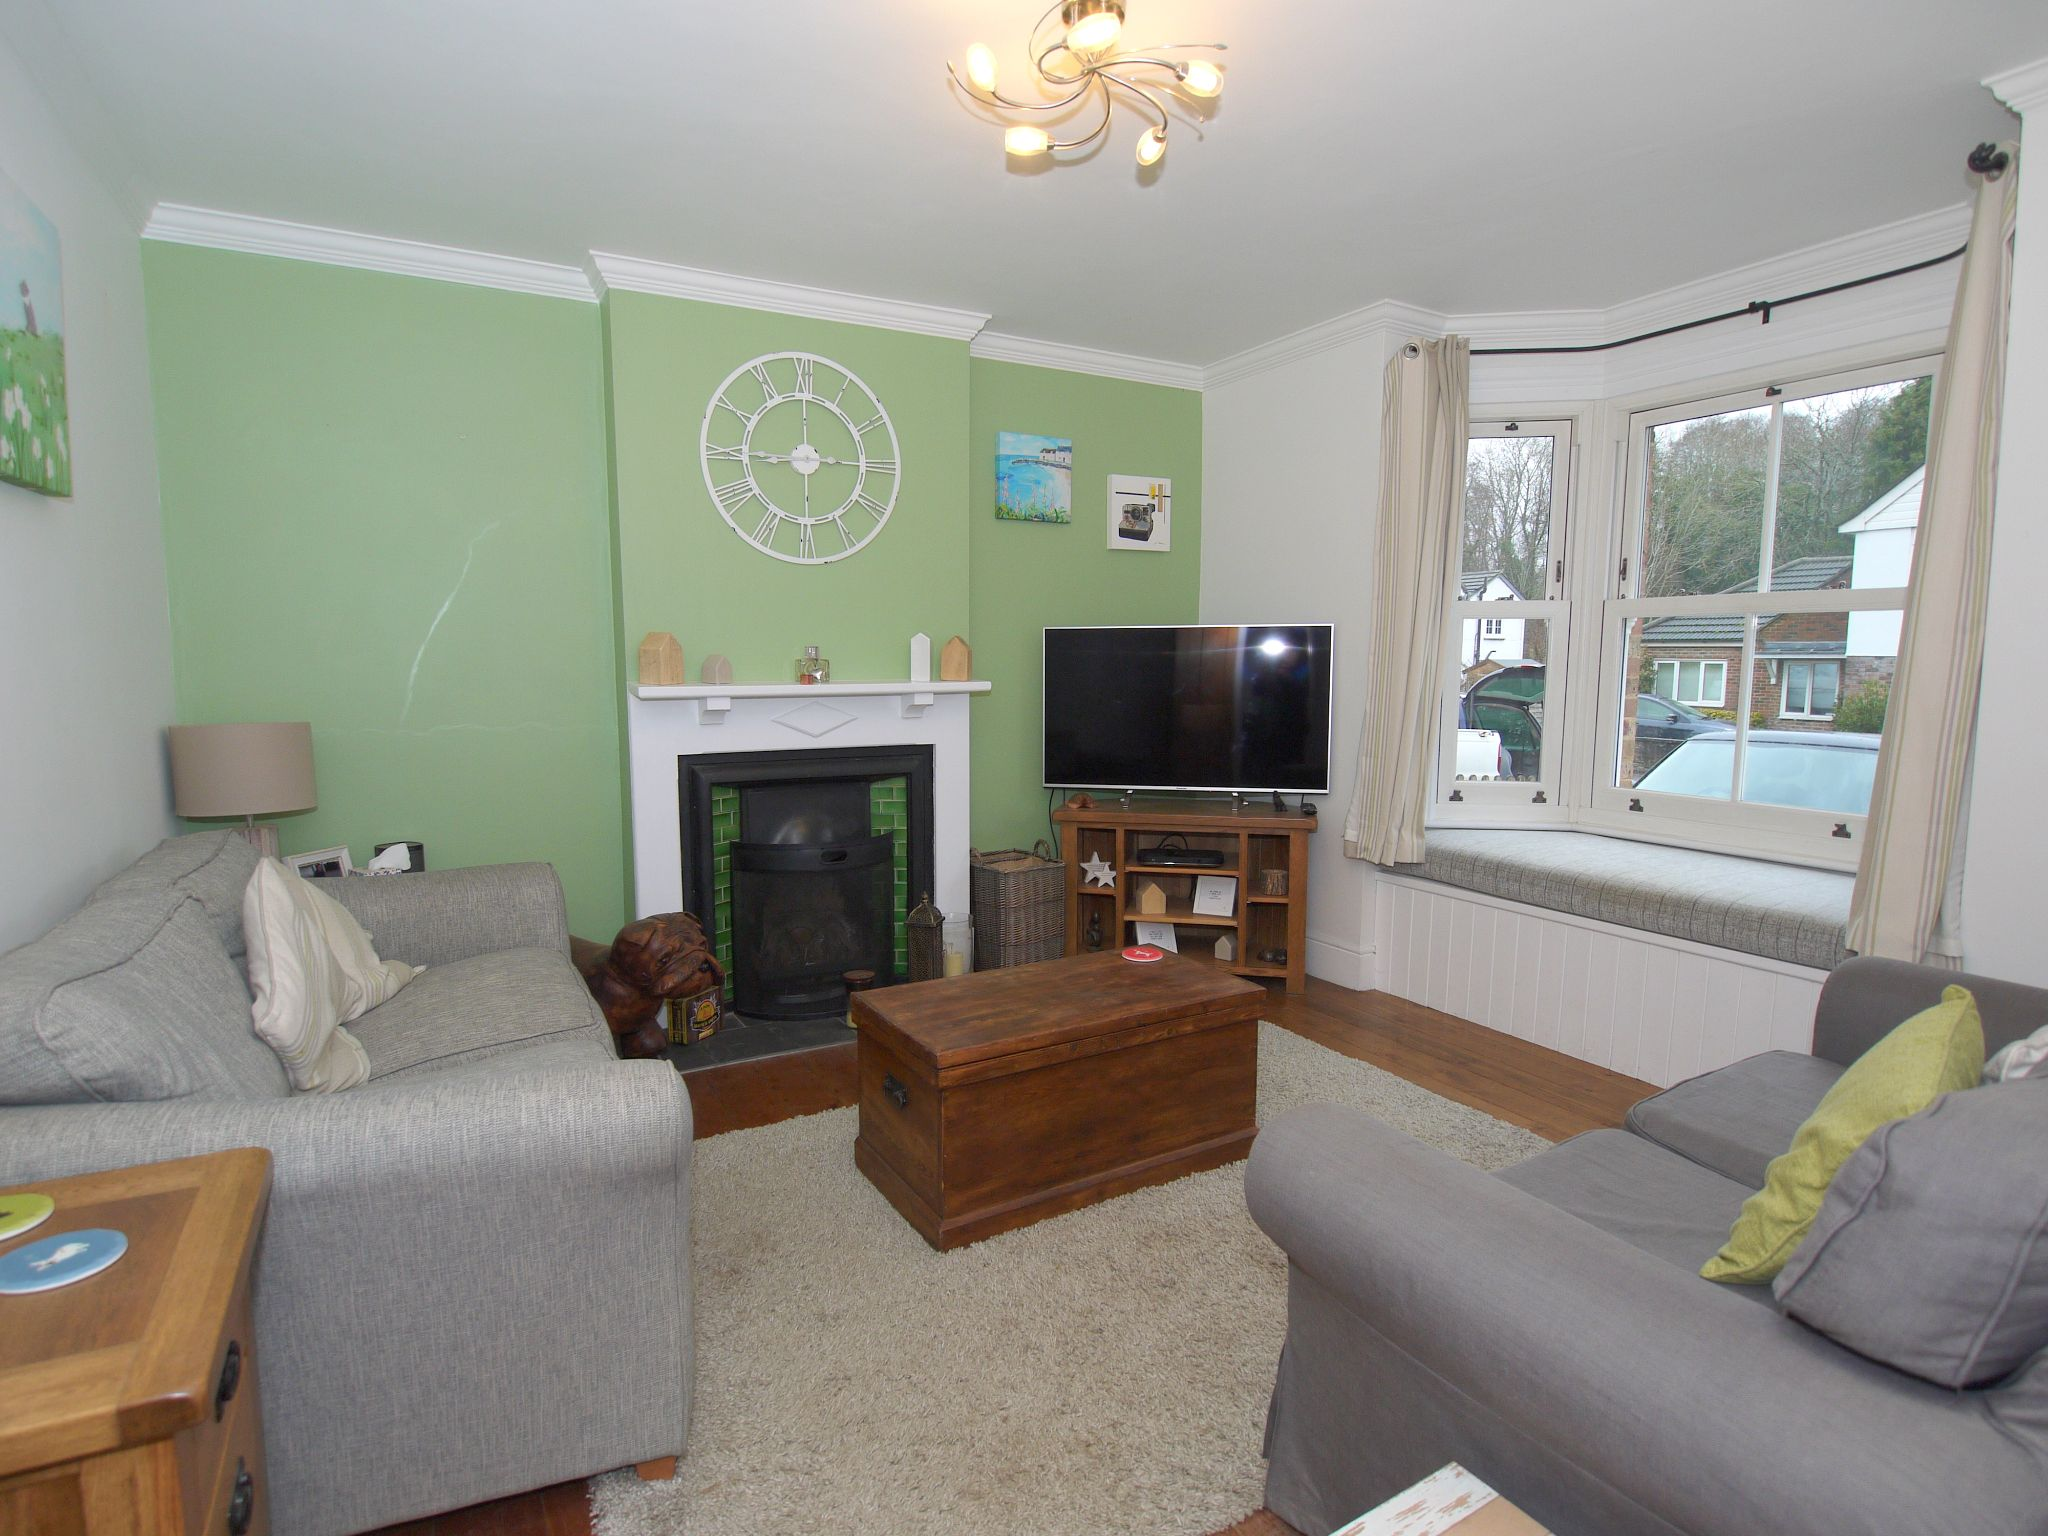 3 bedroom semi-detached house For Sale in Sevenoaks - Photograph 5